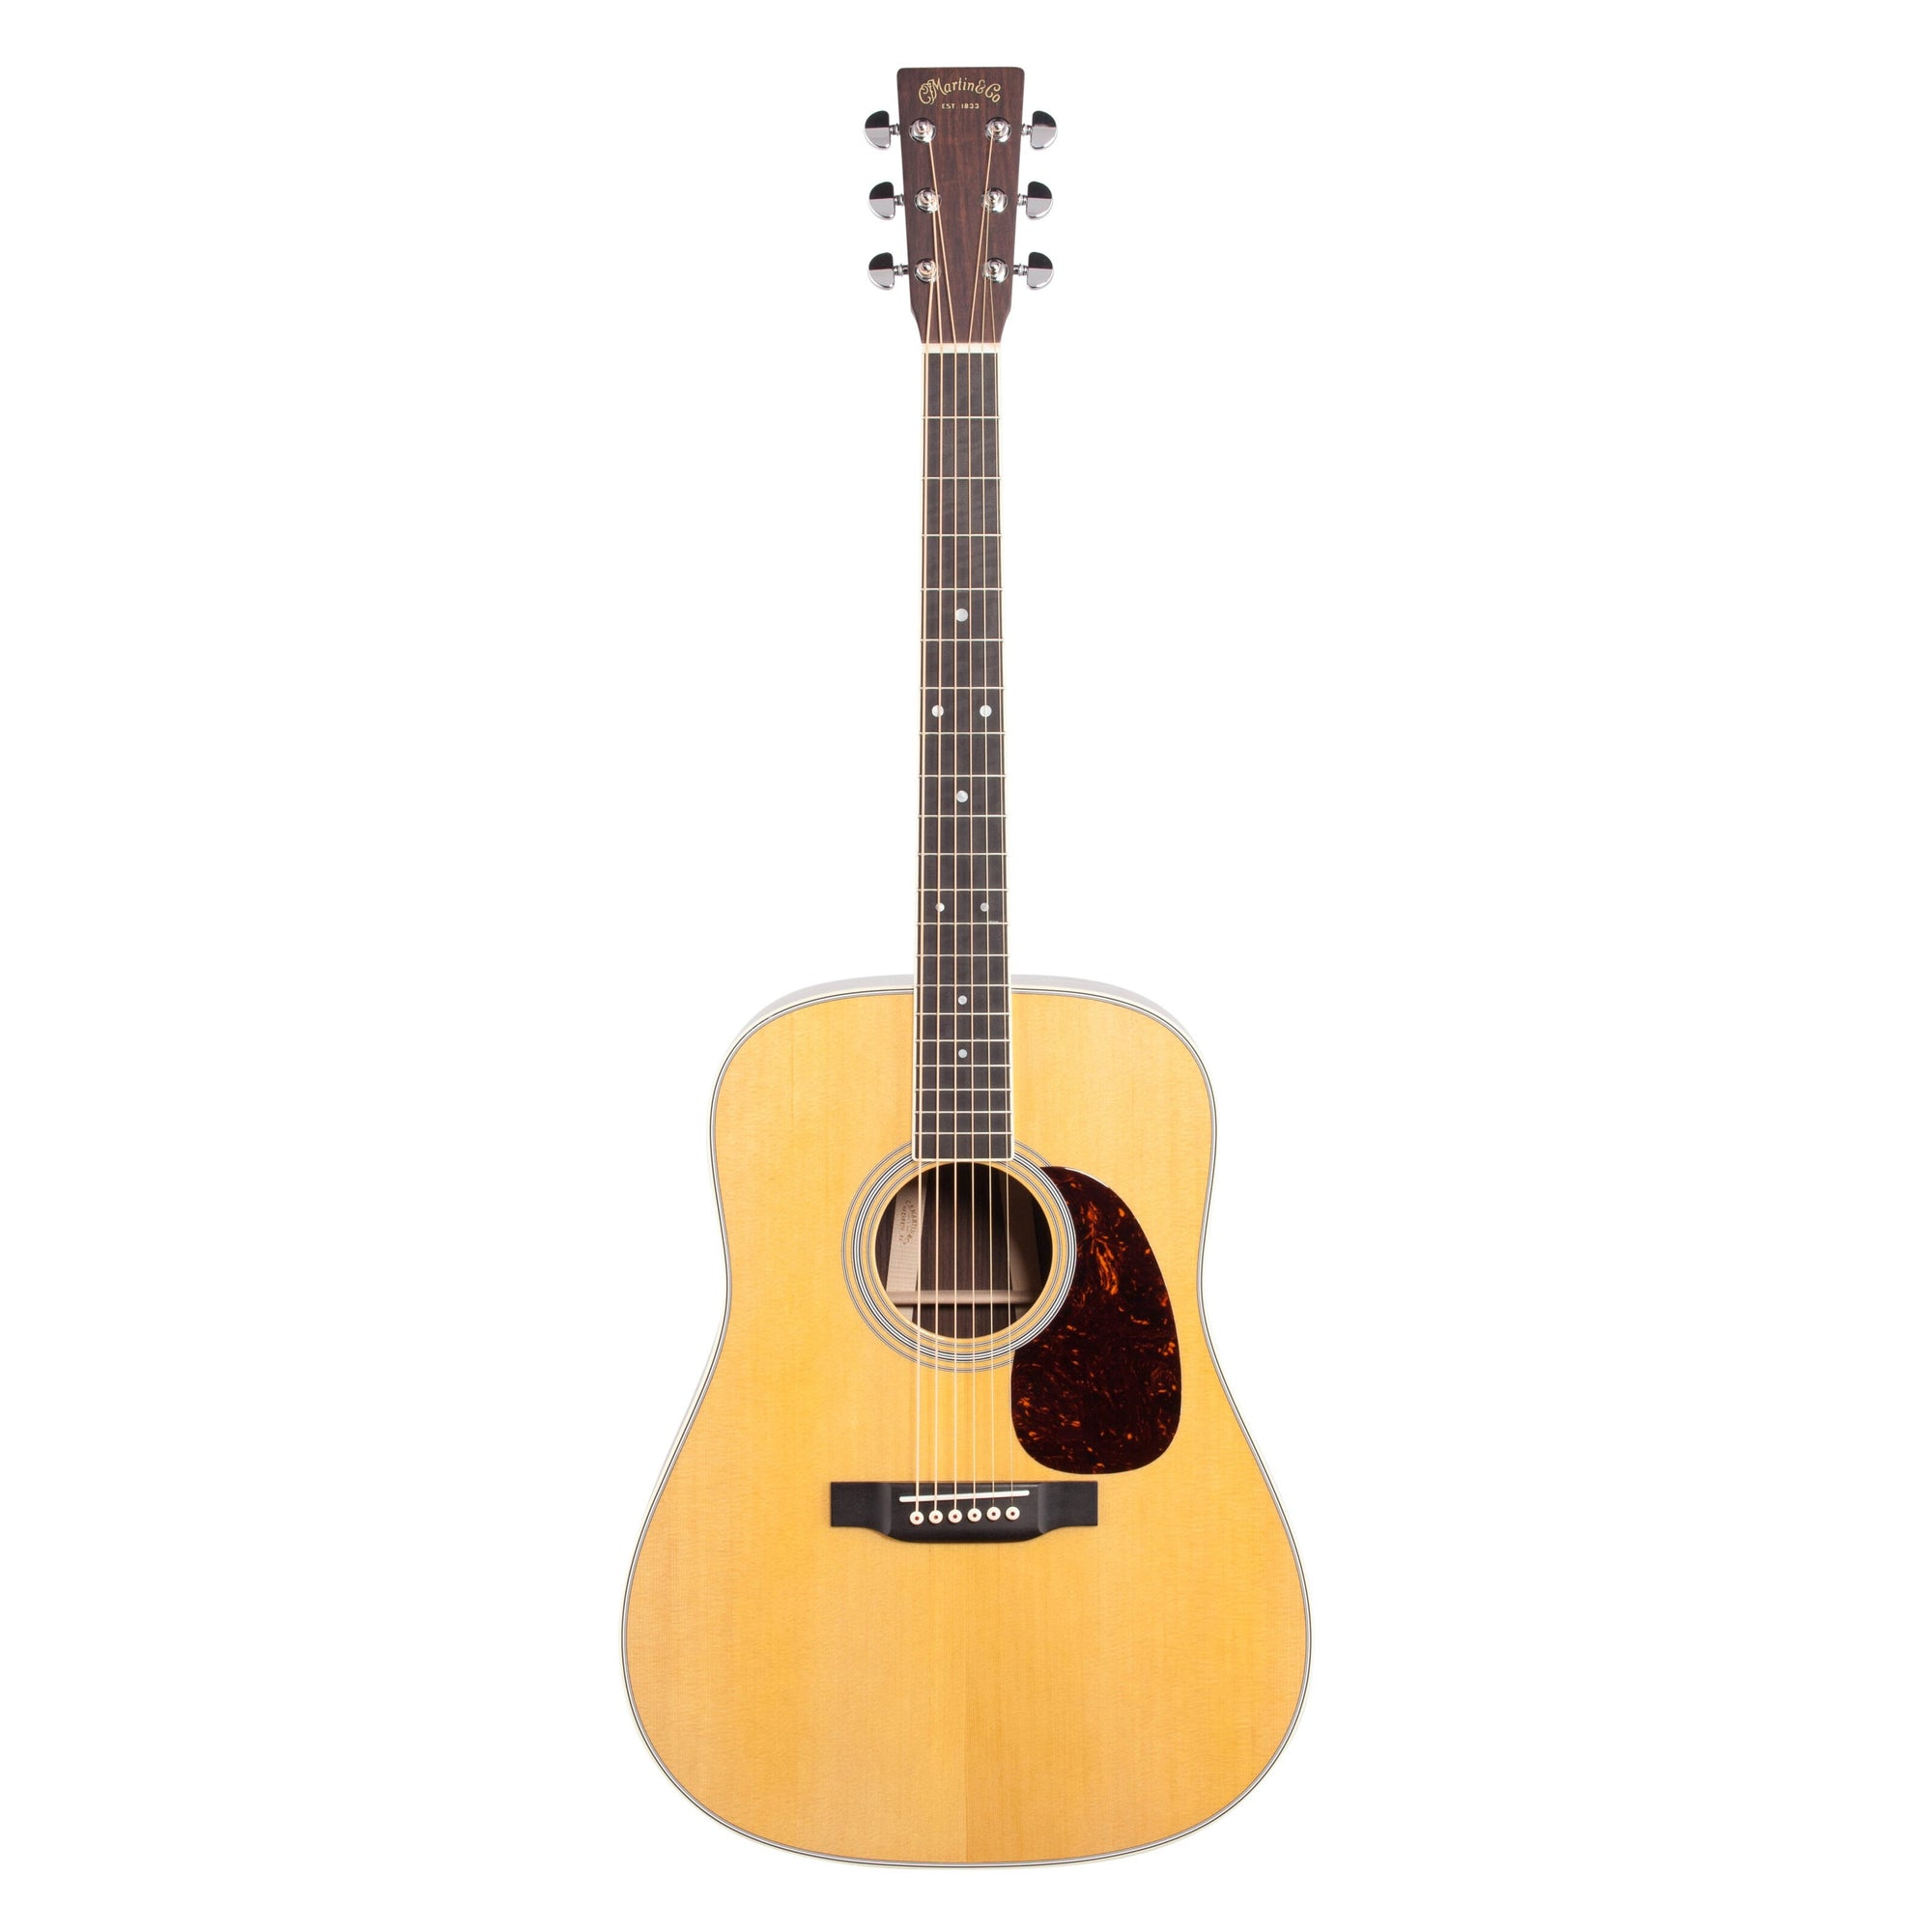 Martin 2018 D-35 Redesign Acoustic Guitar (with Case)